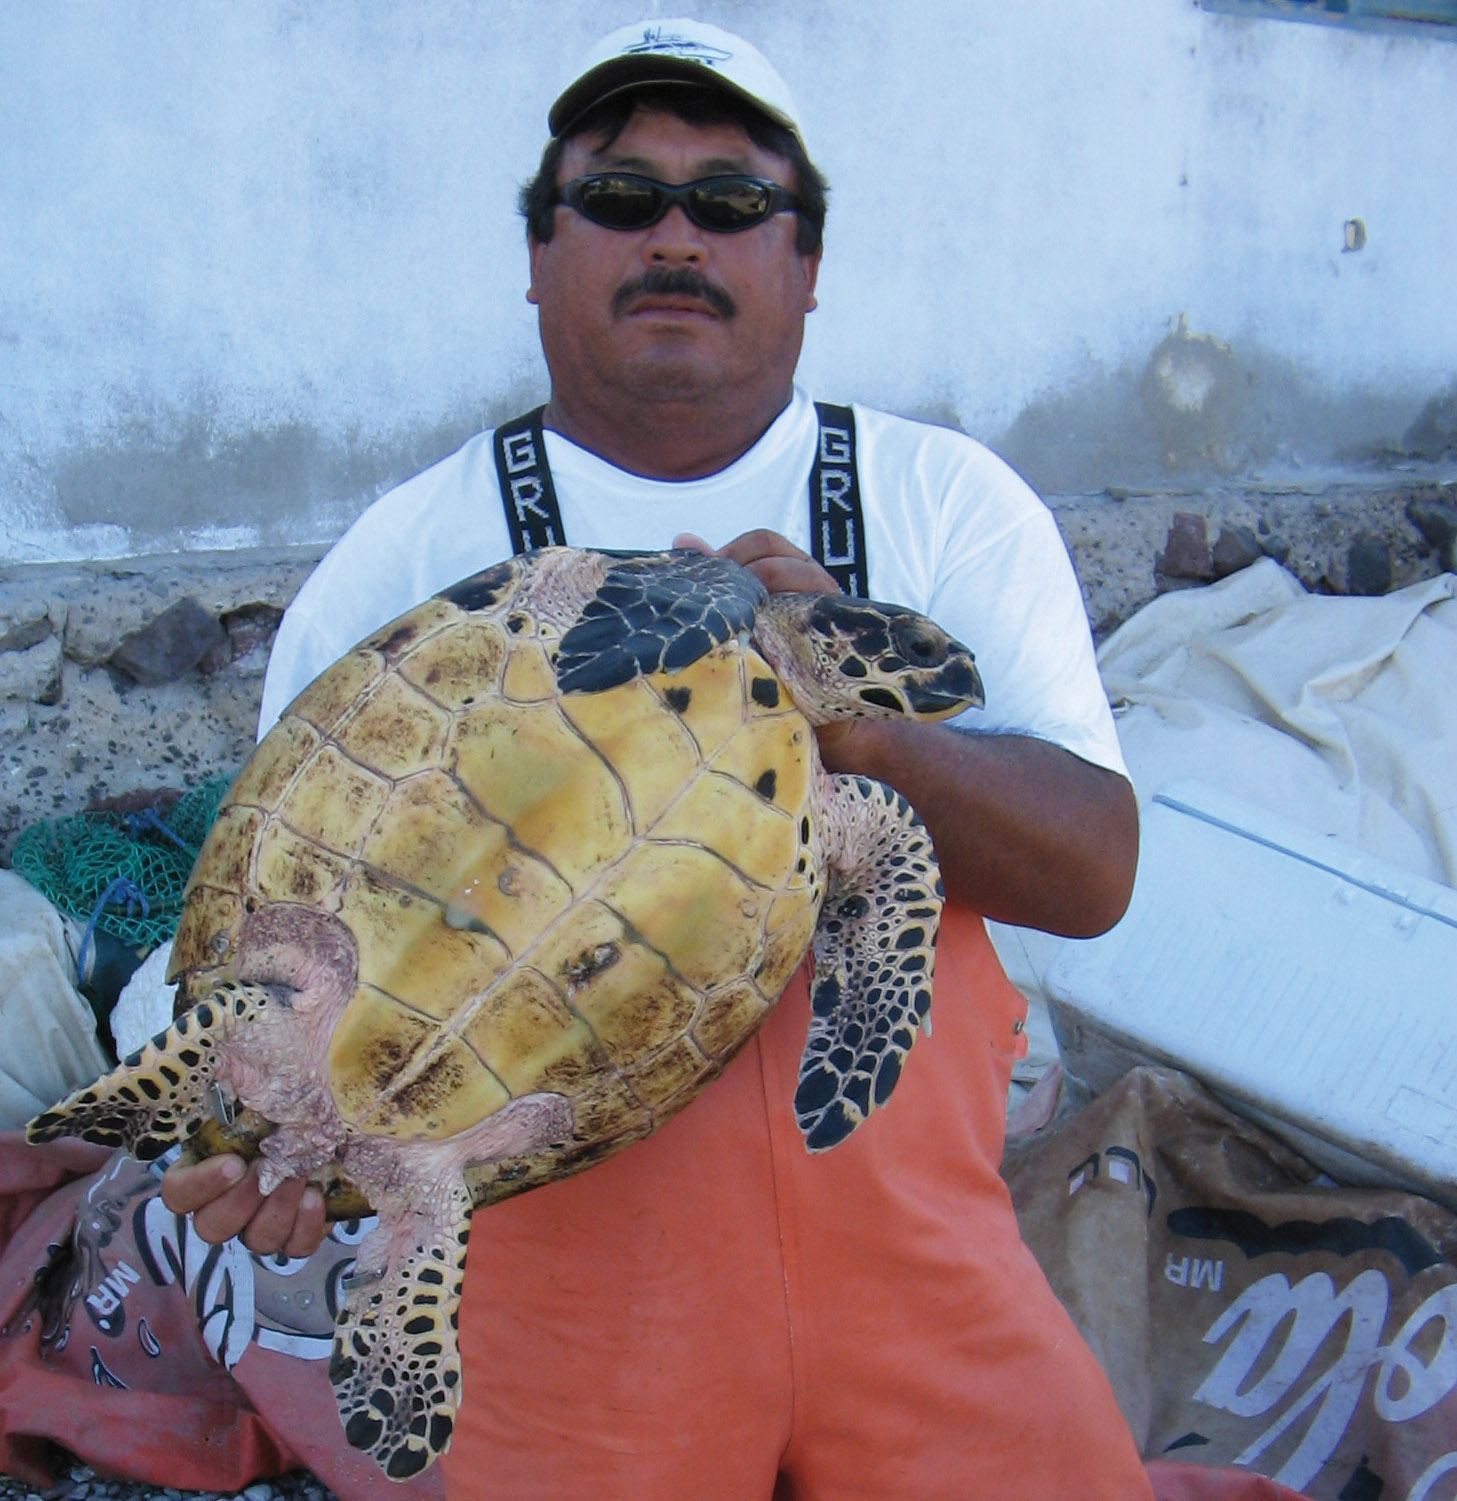 This hawksbill was captured in September 2007 at Isla Pardito, a small island north of La Paz in the Sea of Cortez. Local fishermen Gilberto Cuevas and staff at the organization Niparaja are some of the first participants to report hawksbill to the P ¡Carey! Network. Several hawkbill sightings have already been recorded at Isla Pardito. © Juan Salvador Aceves